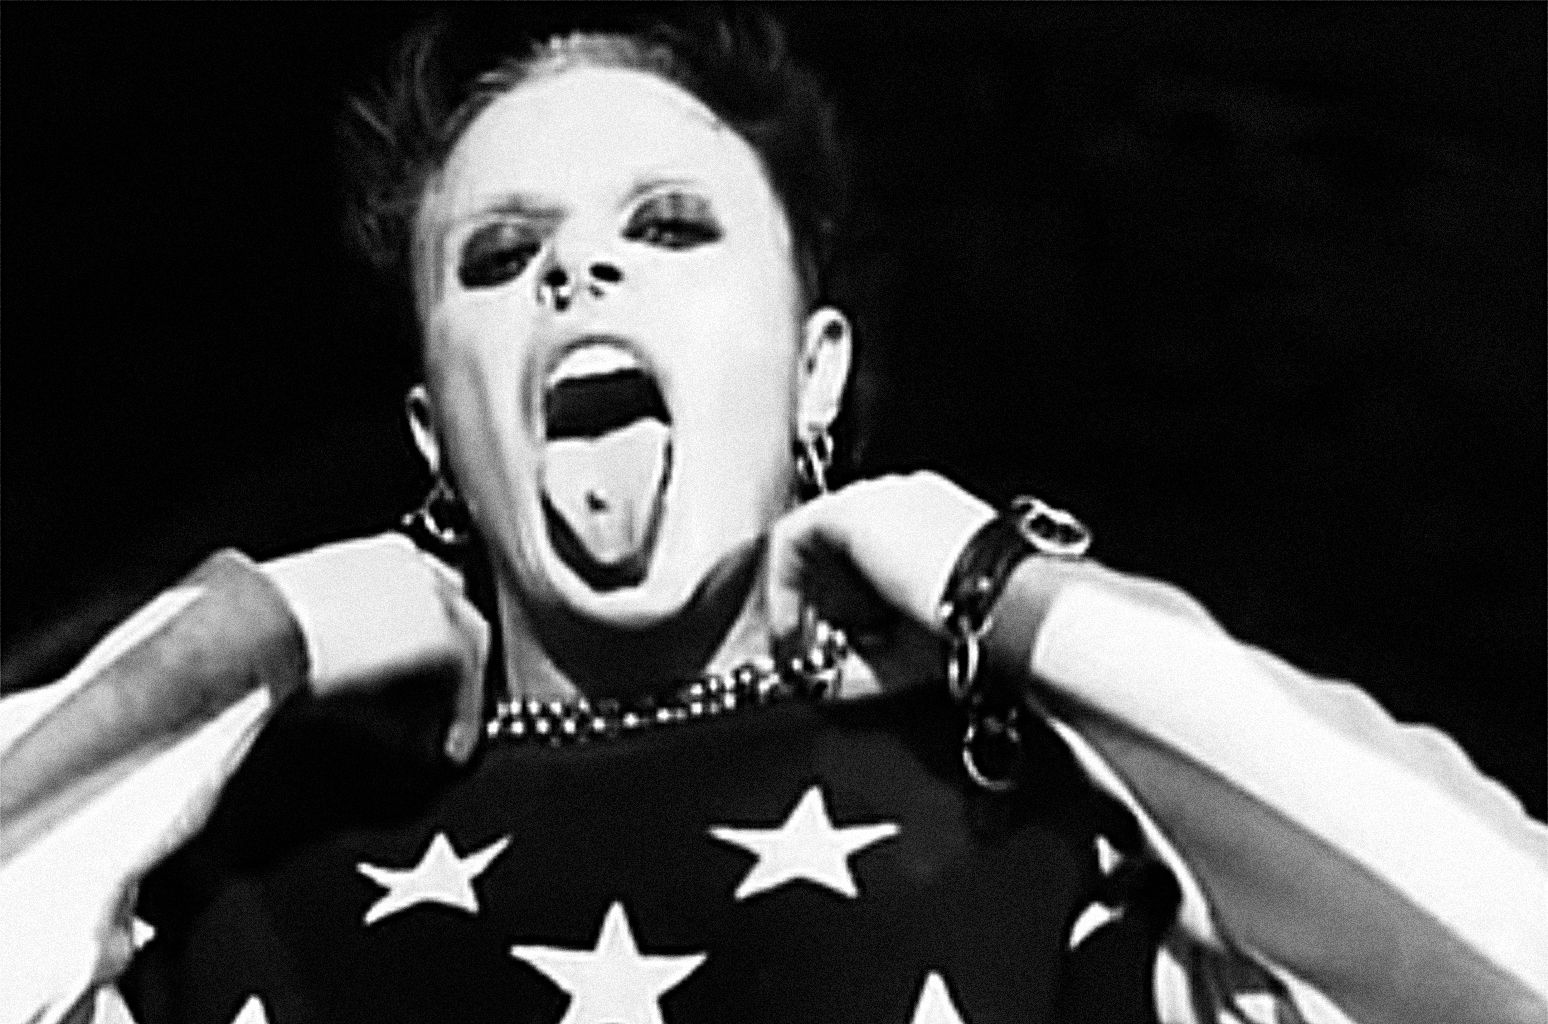 Keith flint of the prodigy was the face and voice of